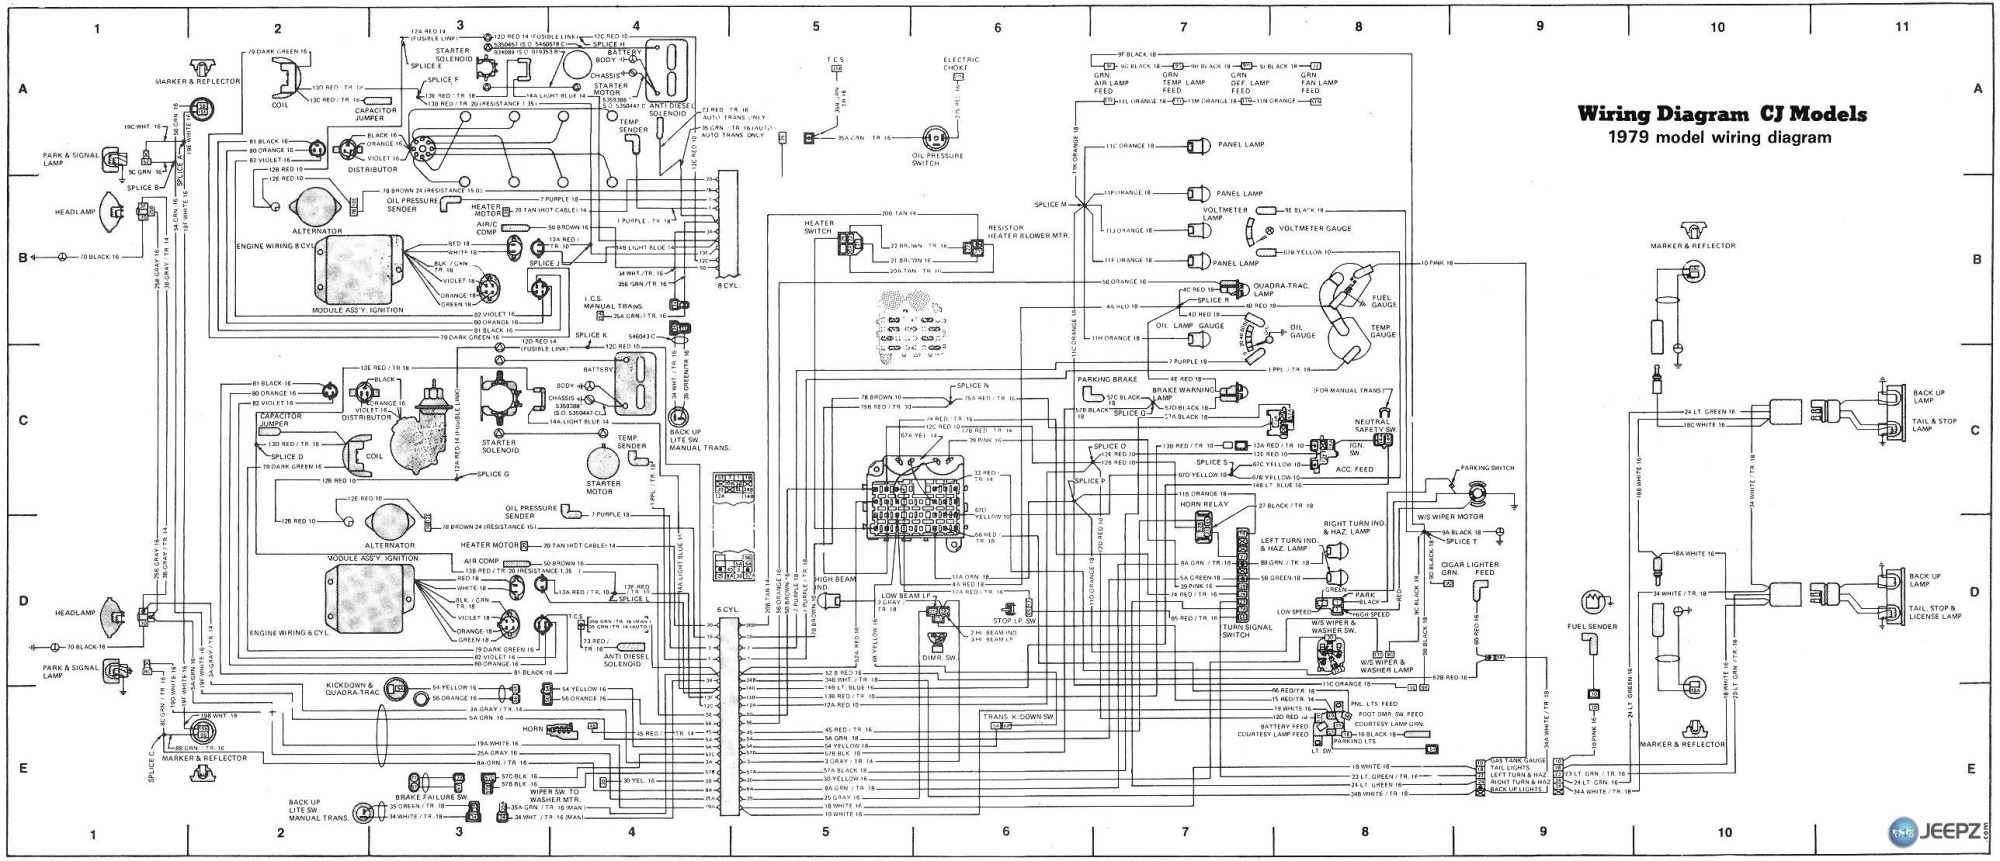 hight resolution of jeep cj5 electrical diagram wiring diagrams transfer jeep cj5 electrical diagram